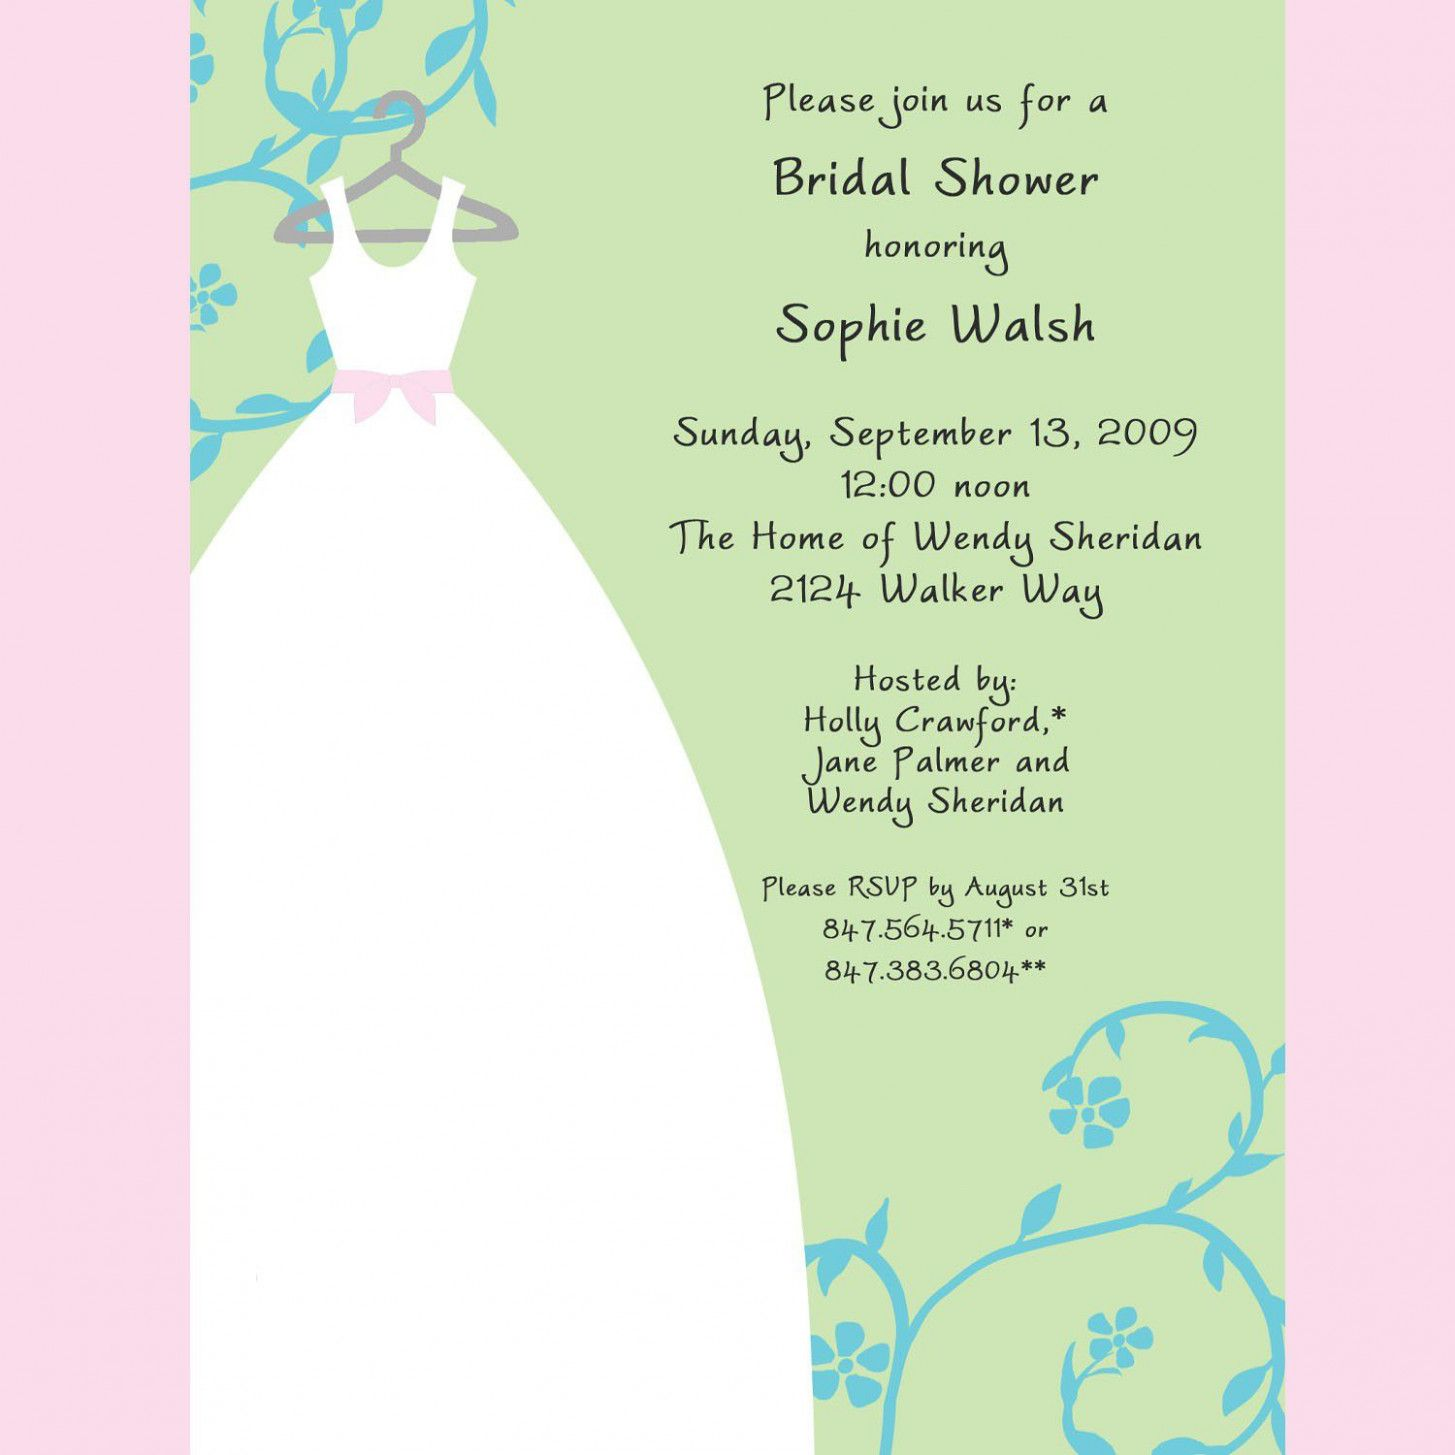 Wedding Invites Free Bridal Shower Wedding Hairstyles And Makeup